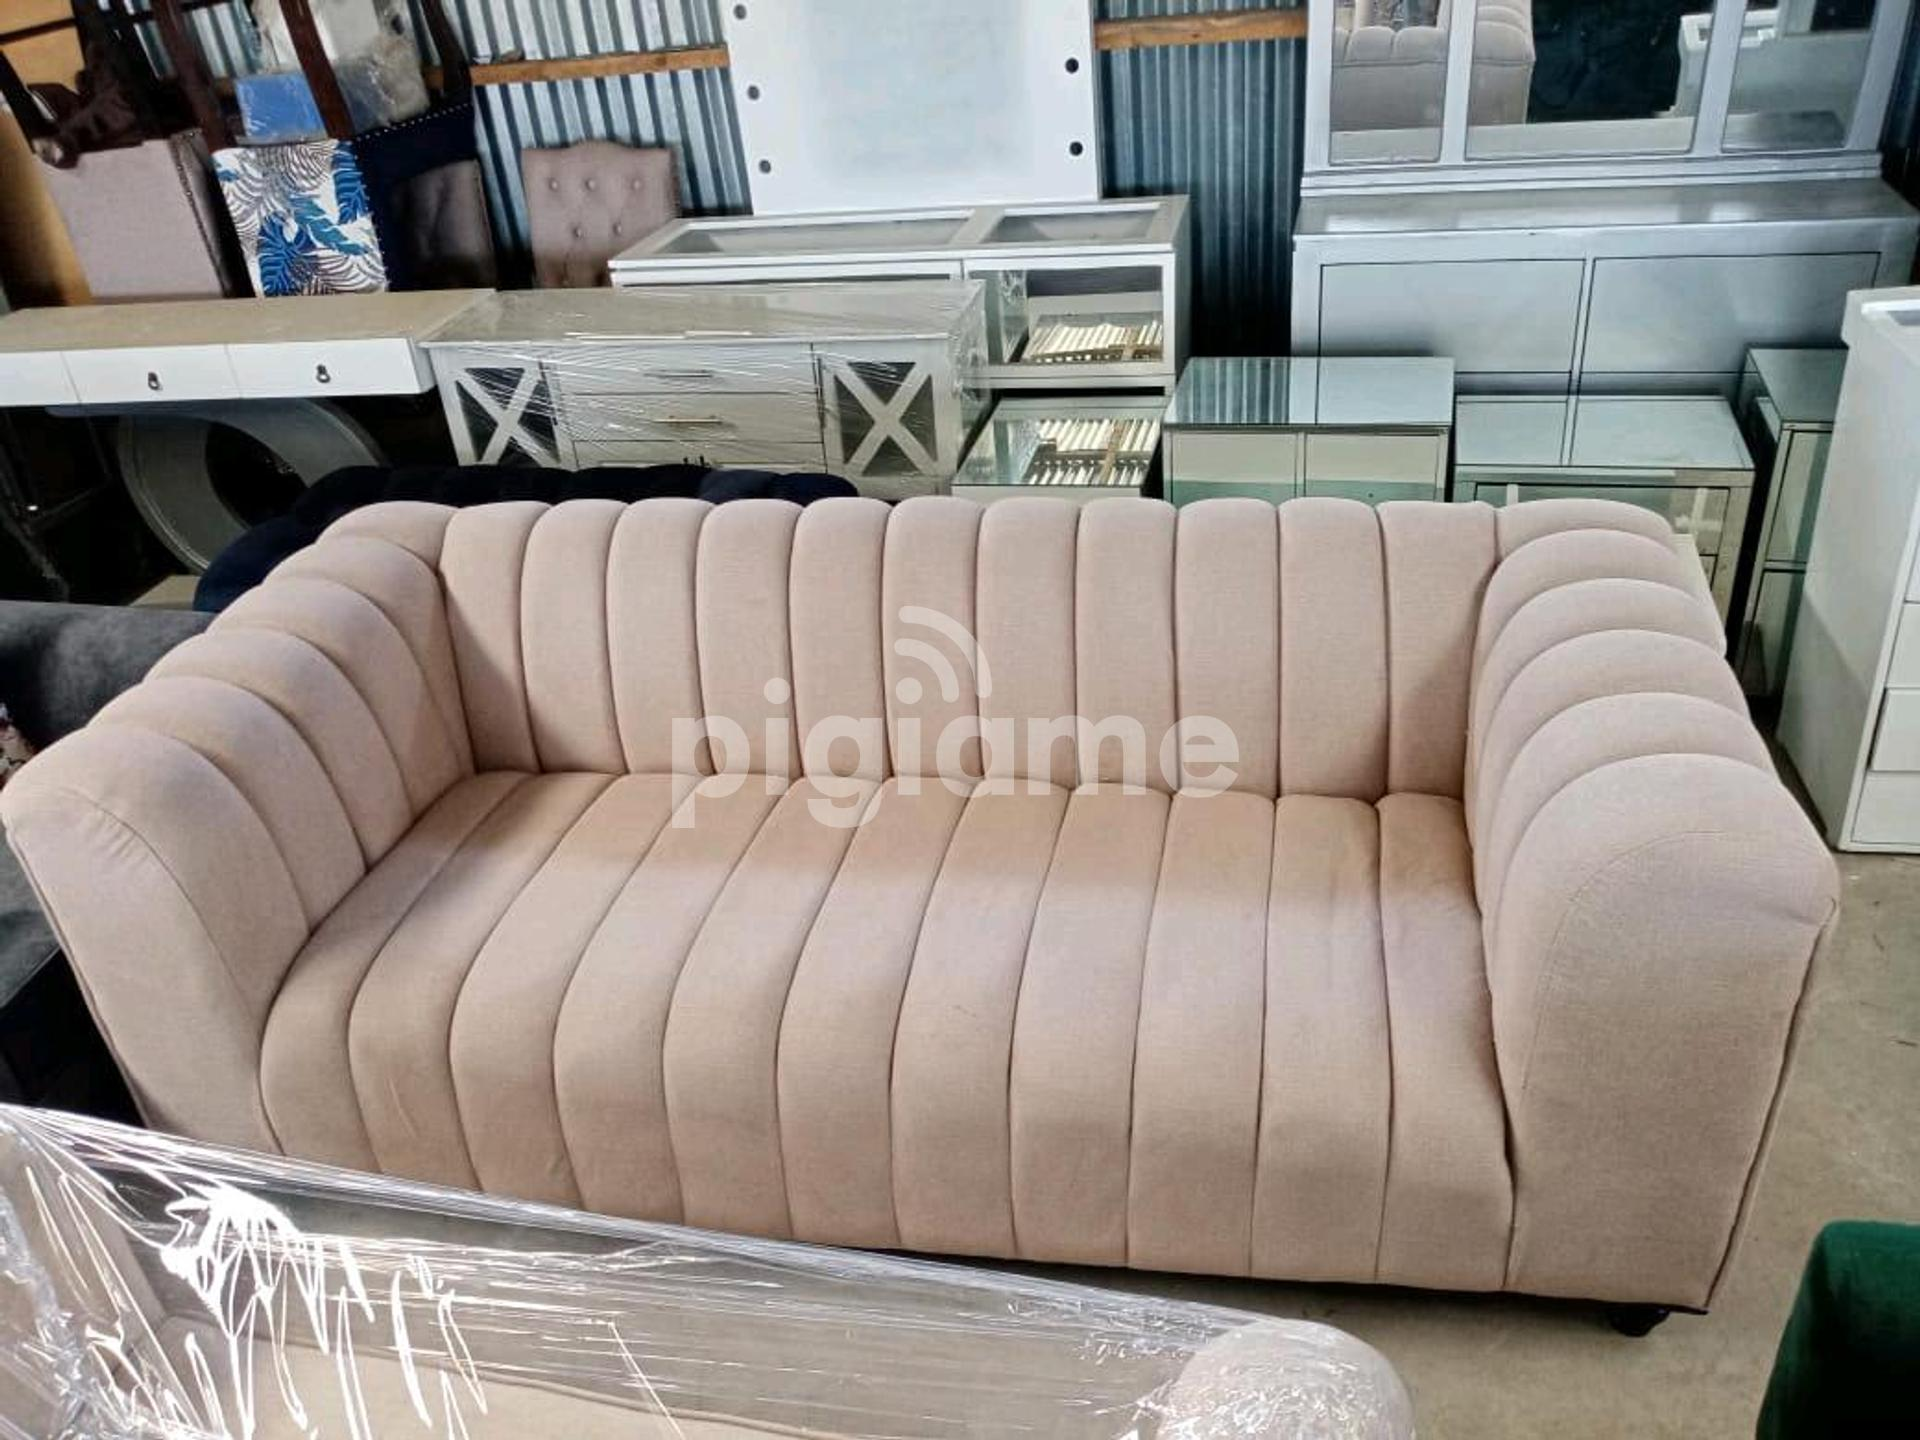 Angelfromneverland Kenya Living Room Sofa Sets Best Sofa Set Designs In Kenya Latest Sofa Designs Latest Sofa Set Designs Sofa Set Designs Your Home Sure Deserves A Touch Of Quality